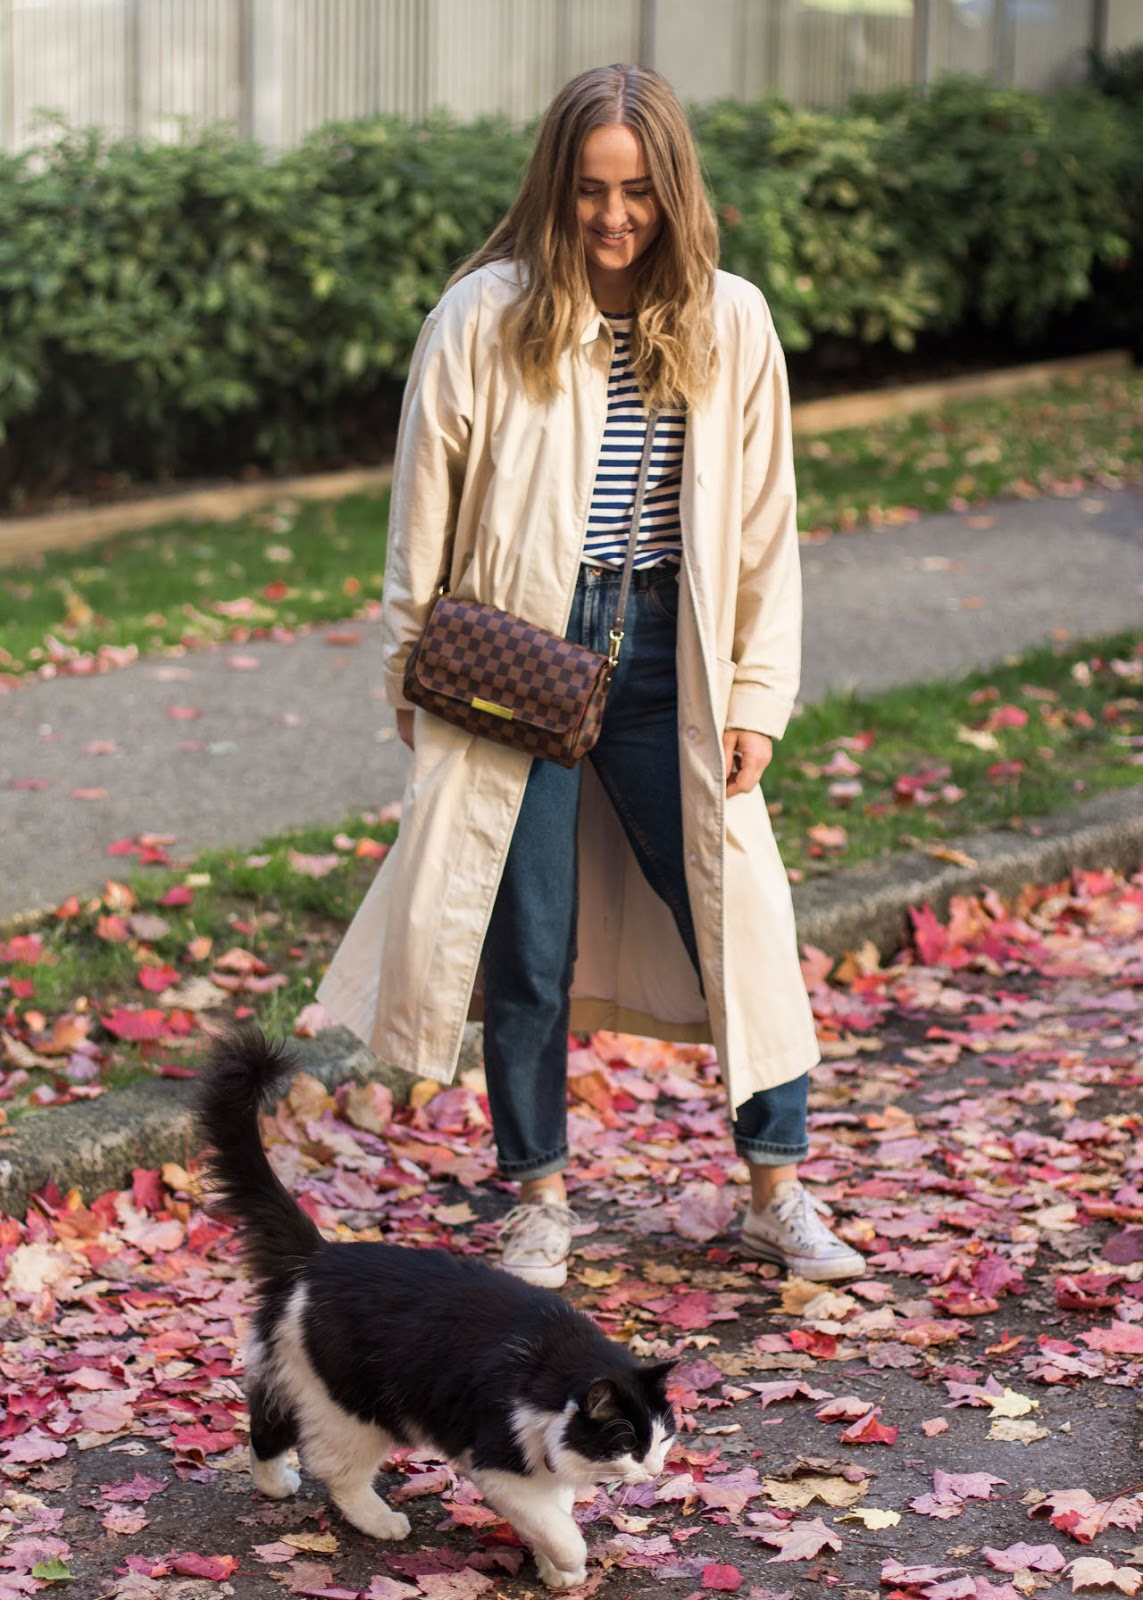 The perfect weekend style - Fall Fashion Favorites - Outfit - Vancouver style blog